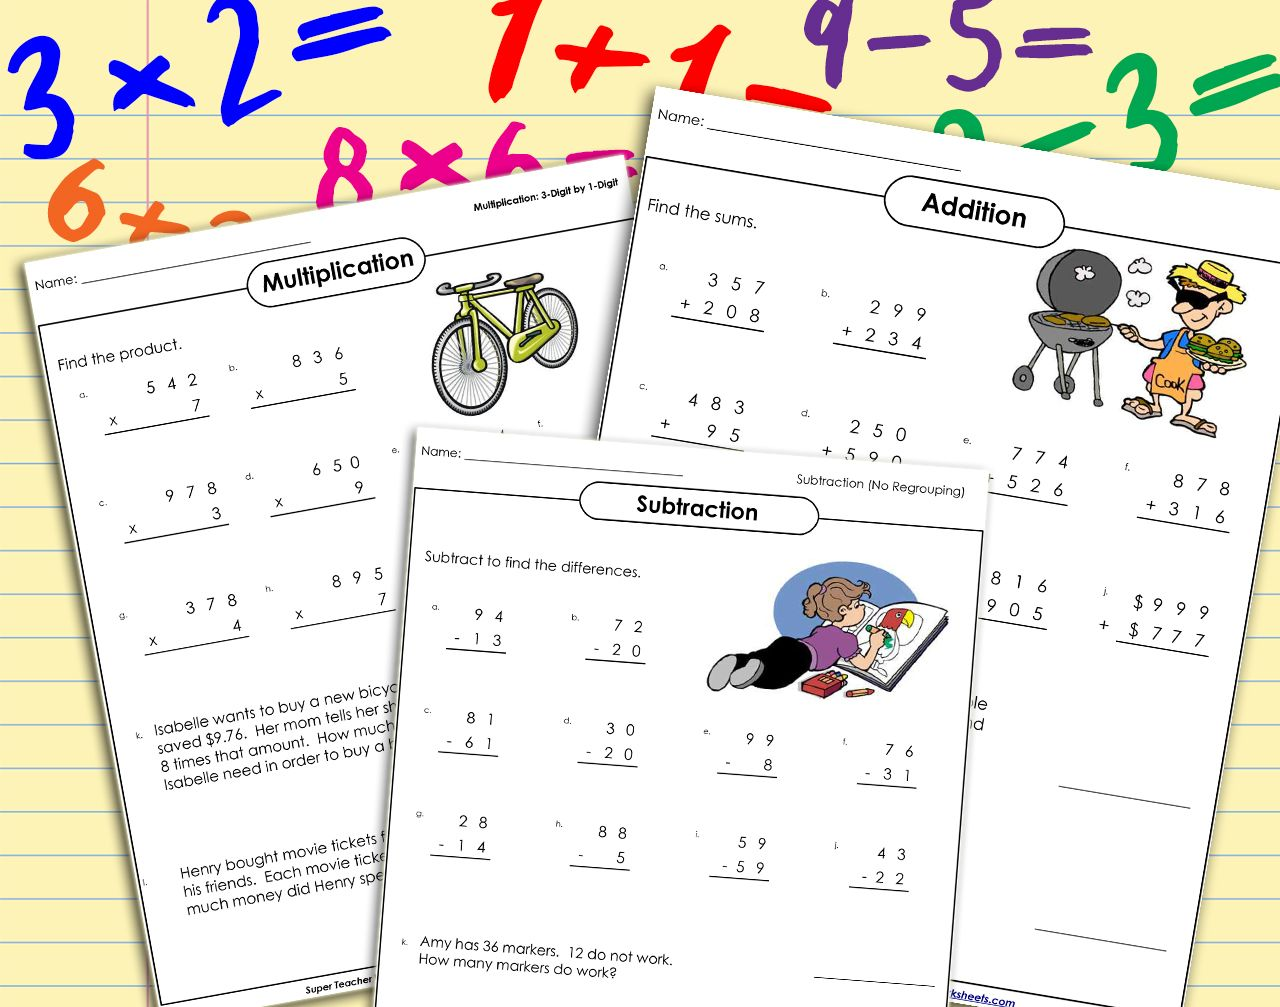 Practice Makes Perfect Reinforce Basic Mathskills With